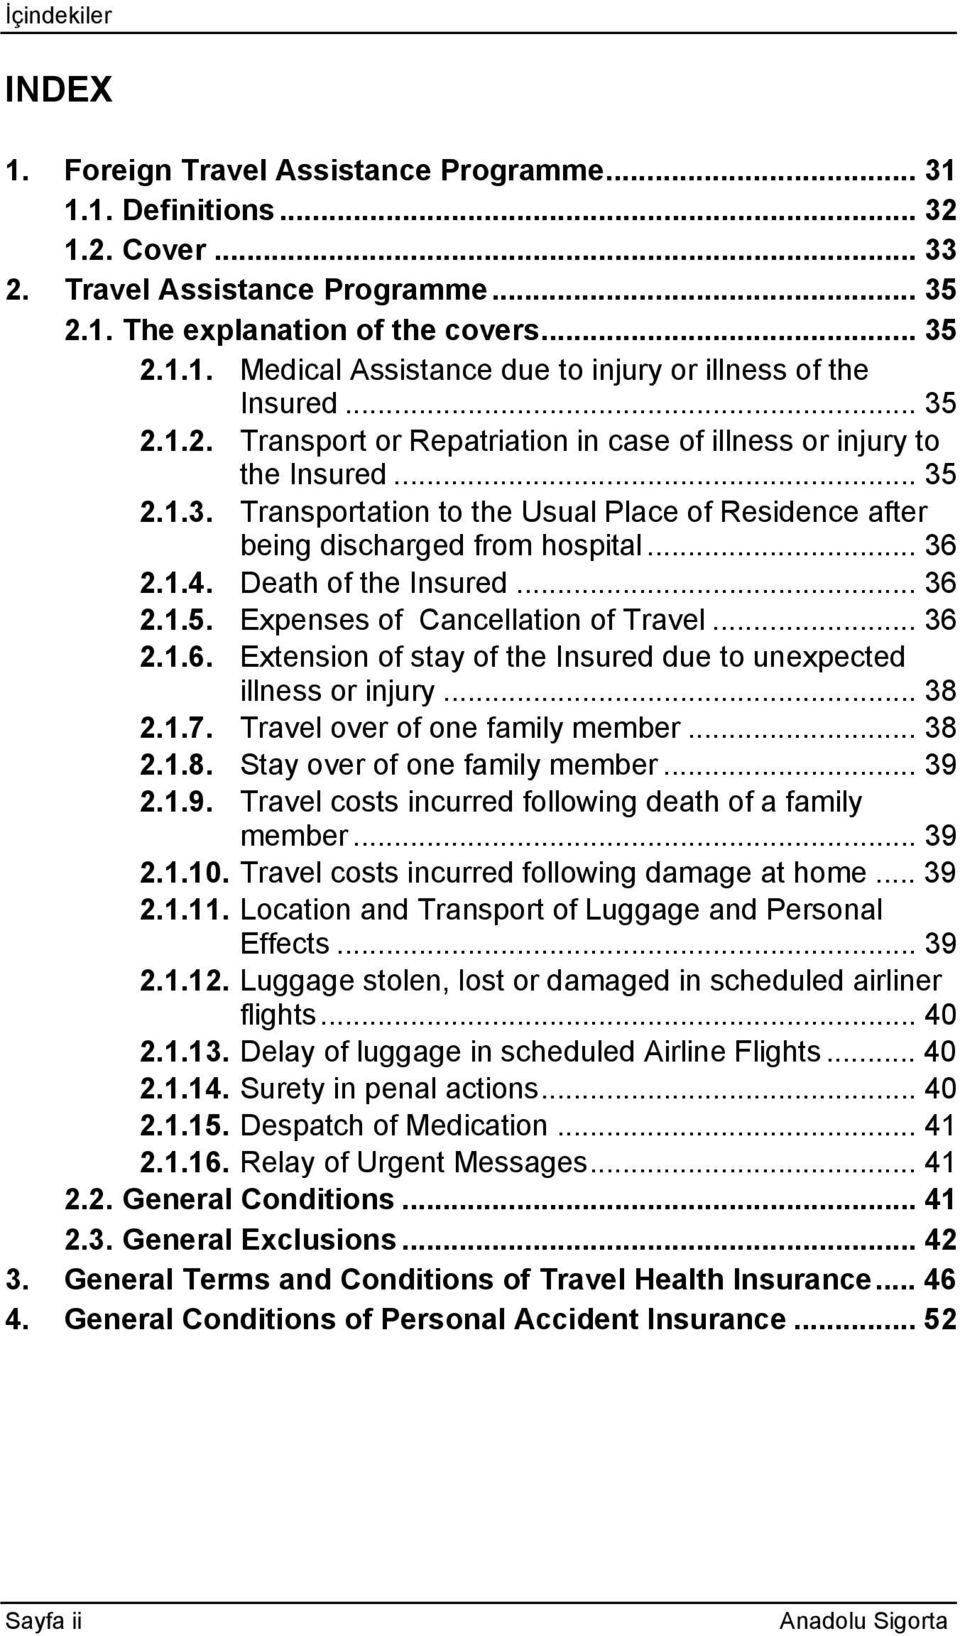 Death of the Insured... 36 2.1.5. Expenses of Cancellation of Travel... 36 2.1.6. Extension of stay of the Insured due to unexpected illness or injury... 38 2.1.7. Travel over of one family member.